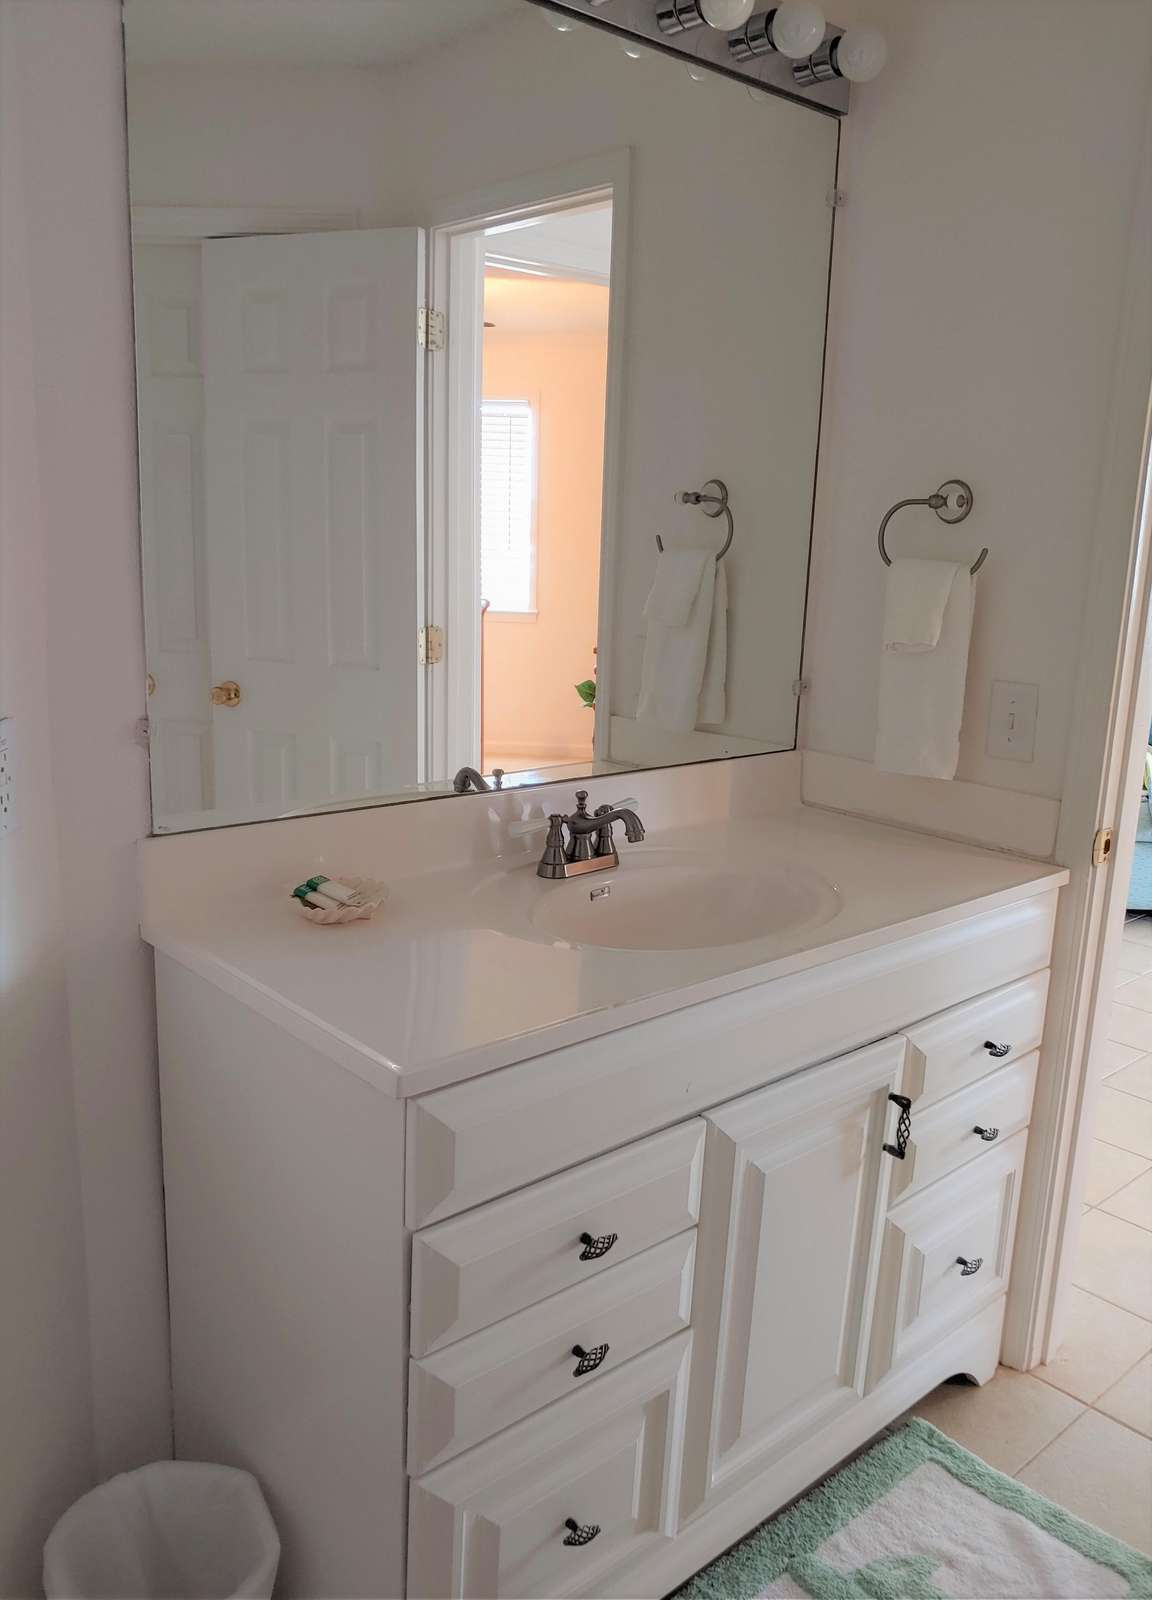 Changing Area of Bathroom